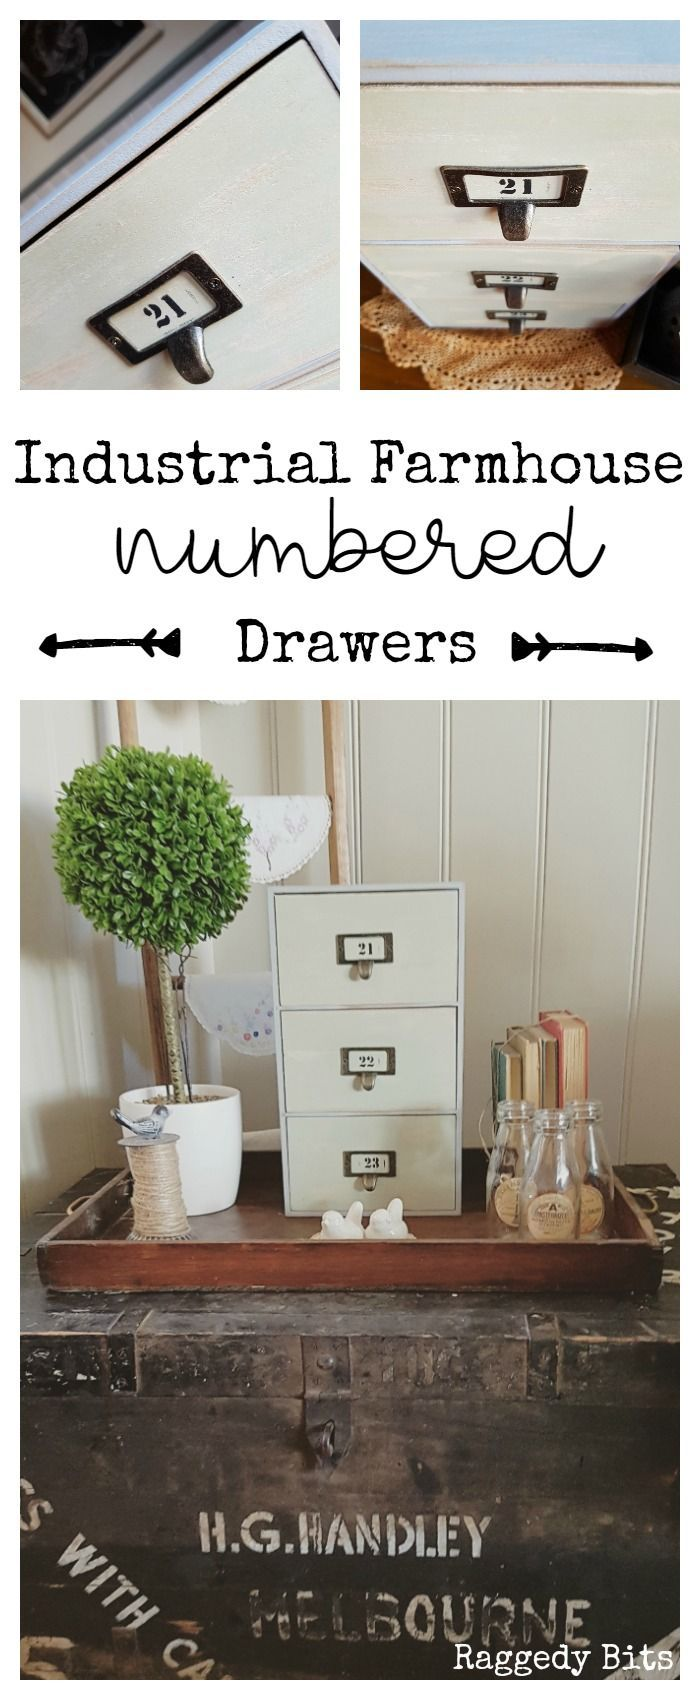 Thrifted drawers transformed into Industrial Farmhouse Numbered Drawers using…